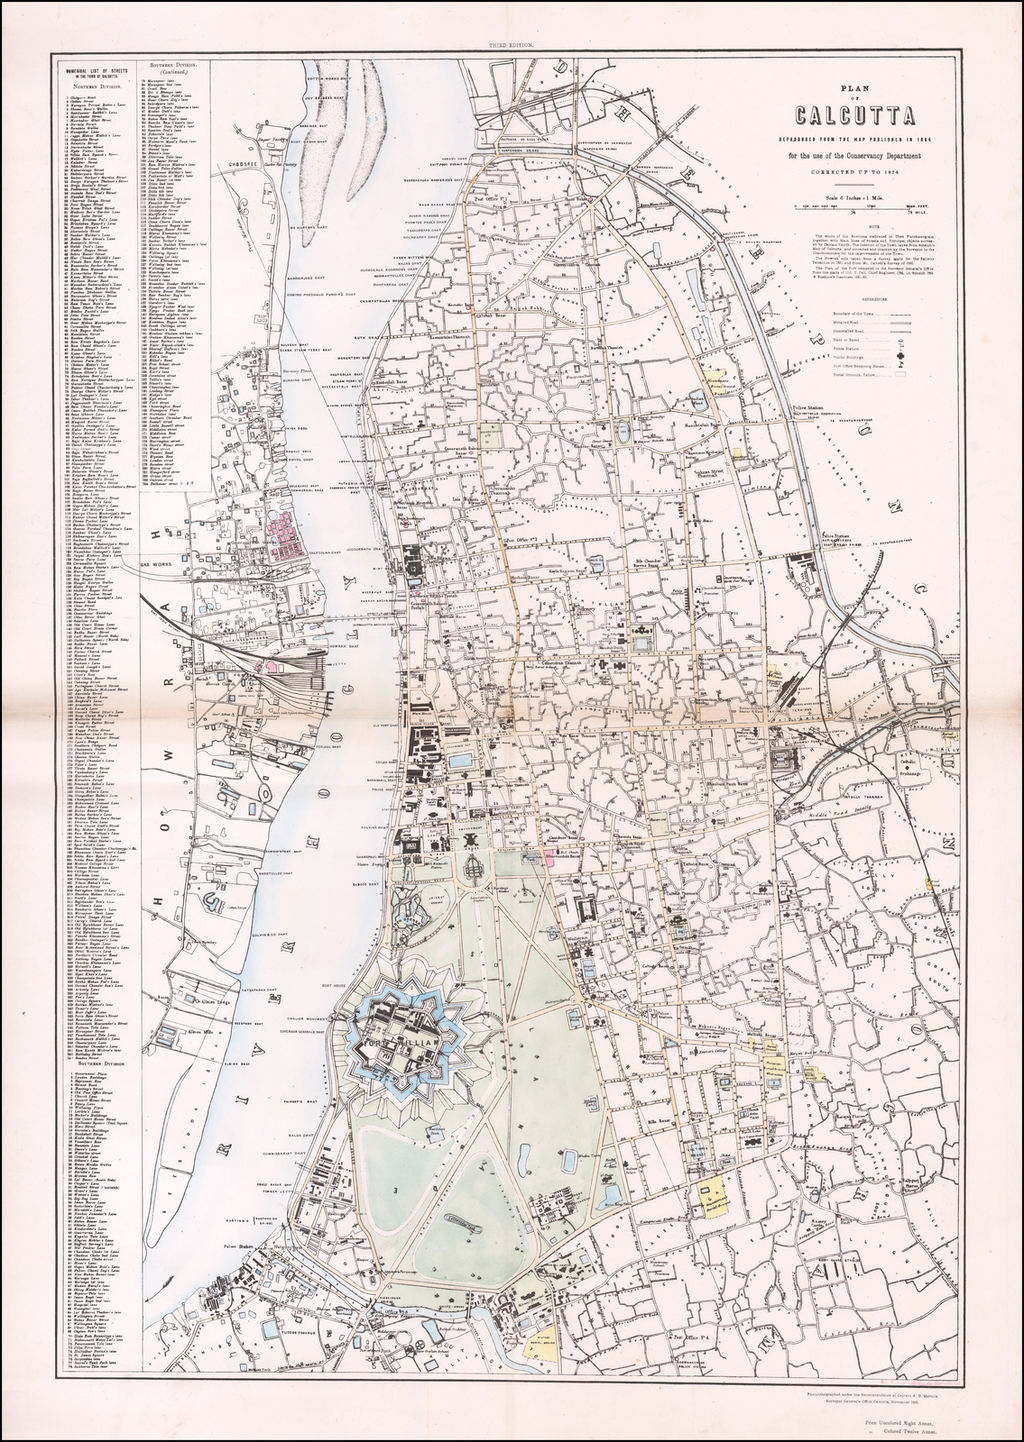 Plan of Calcutta Reproduced From The Map Published in 1854 for the use of the Conservancy Department Corrected up to 1874 By Ralph Smyth